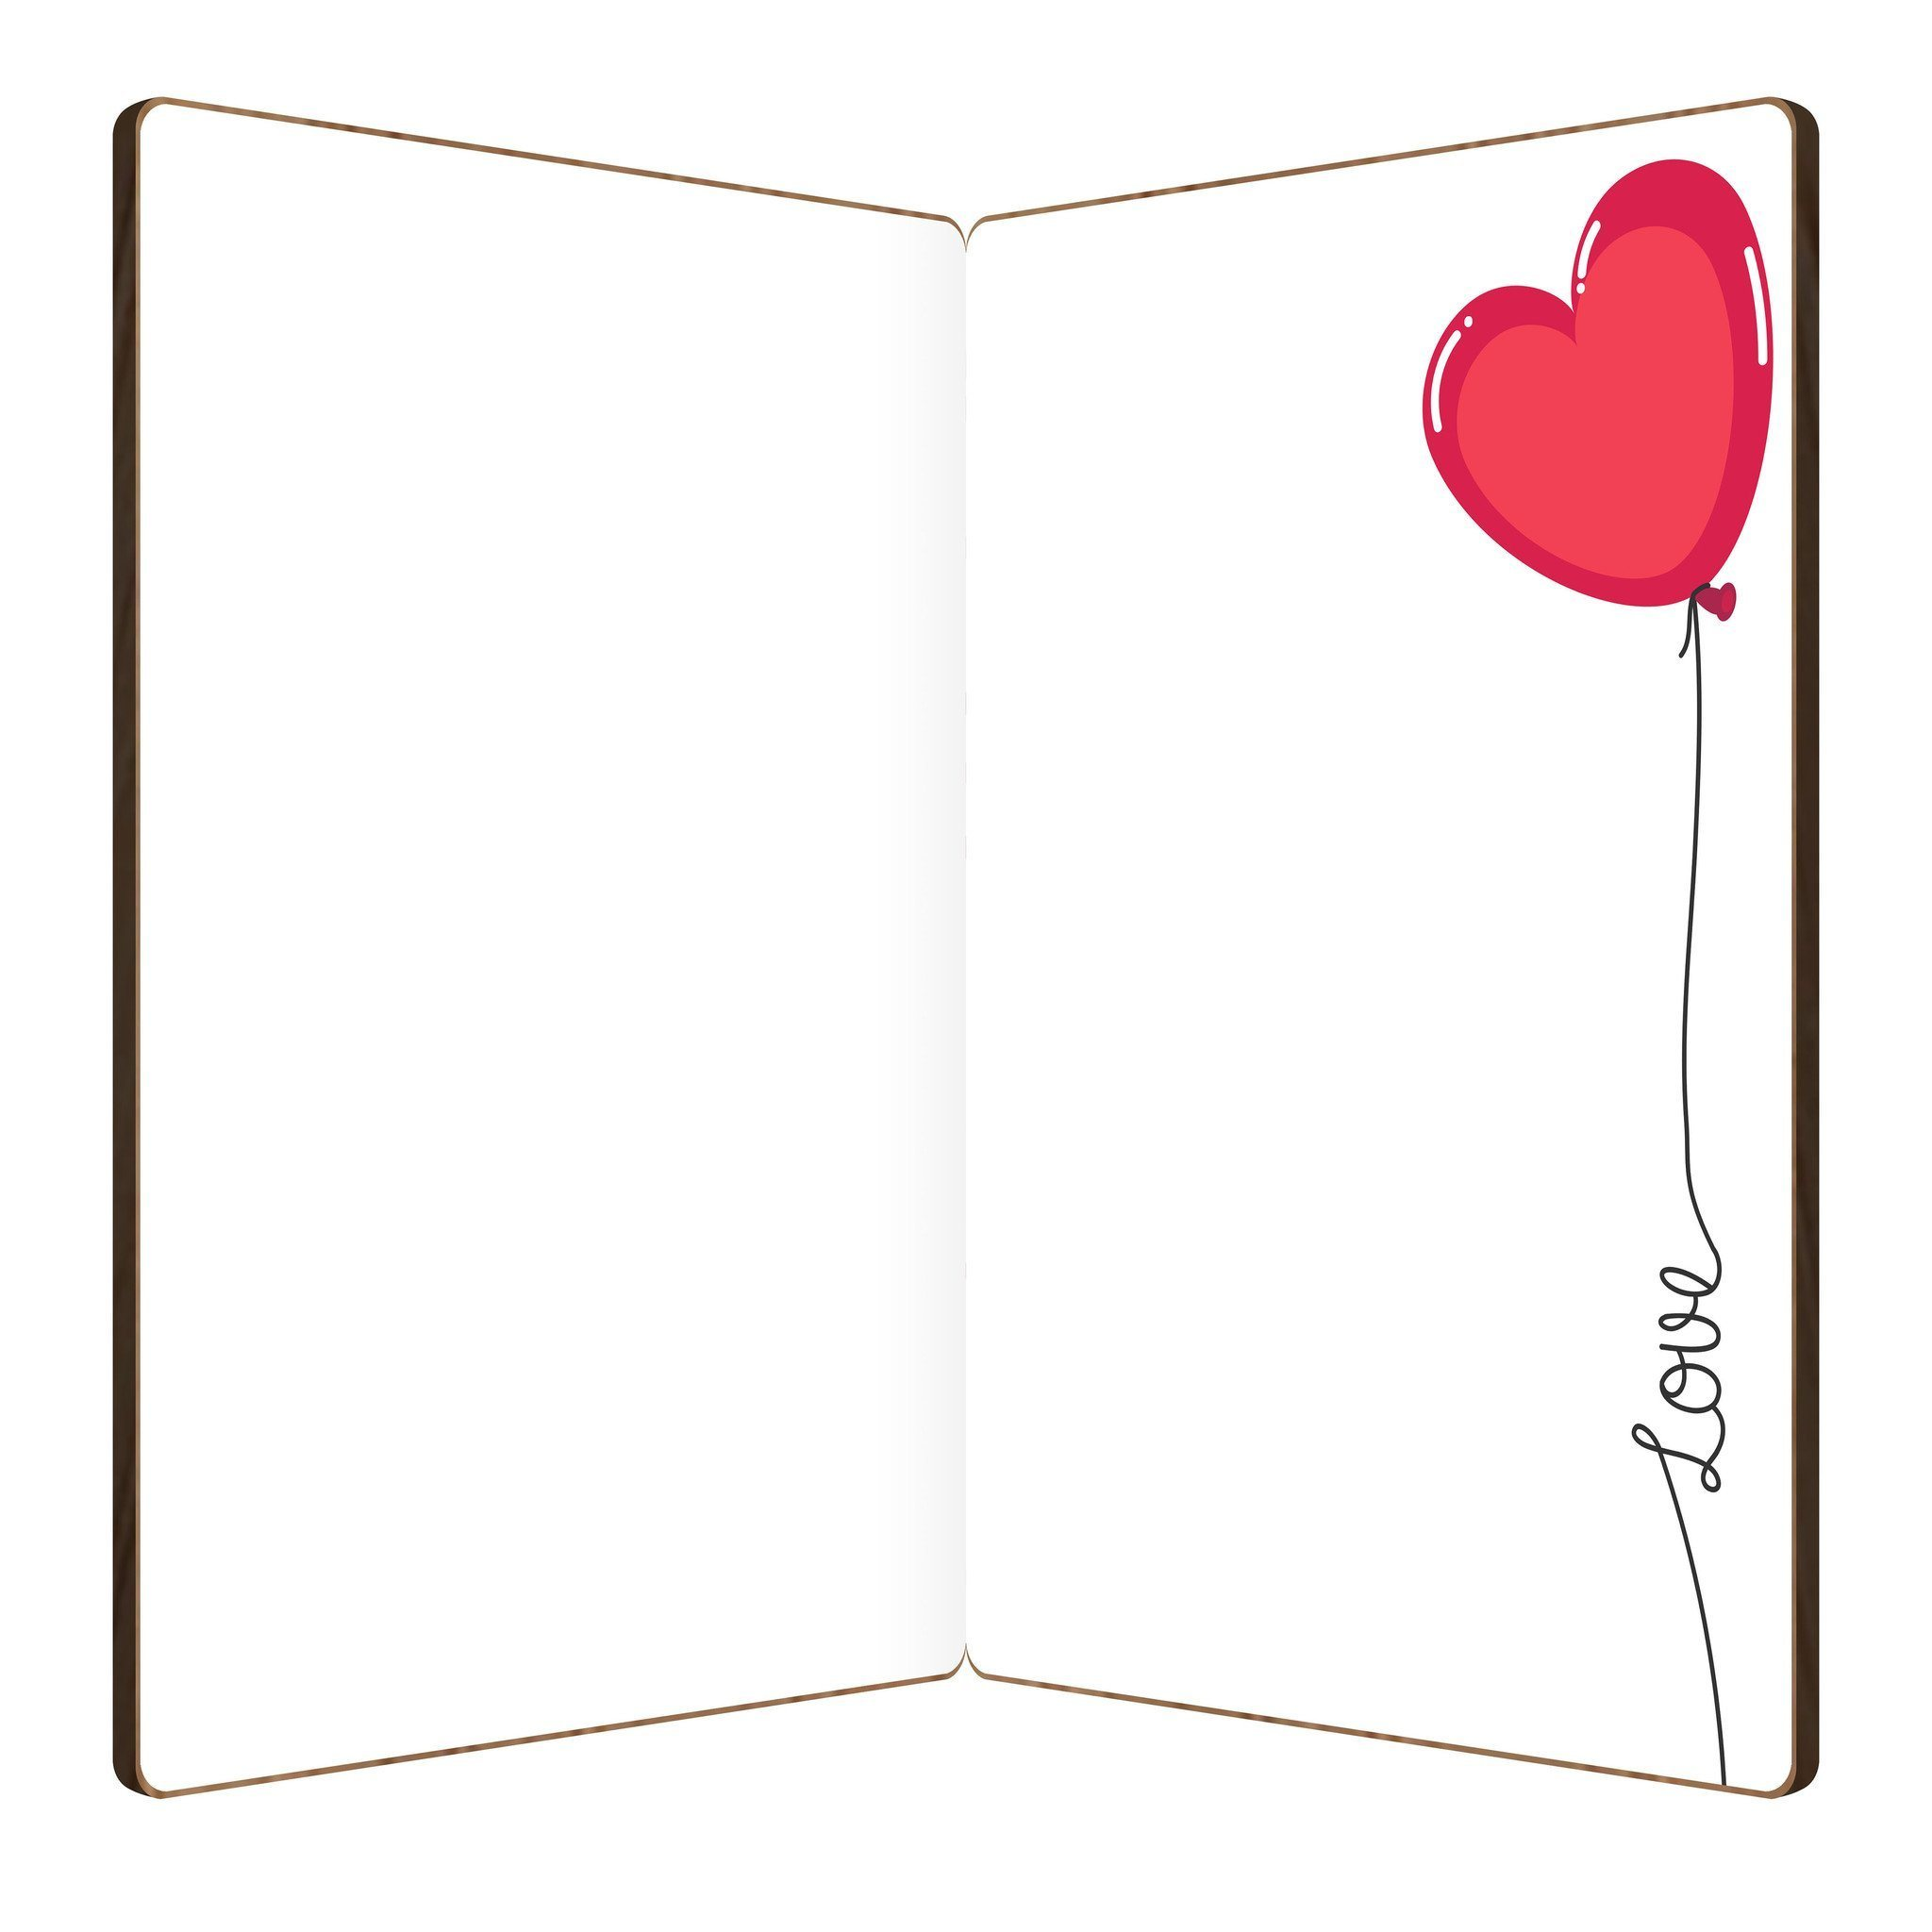 Floating Hearts Love Card.